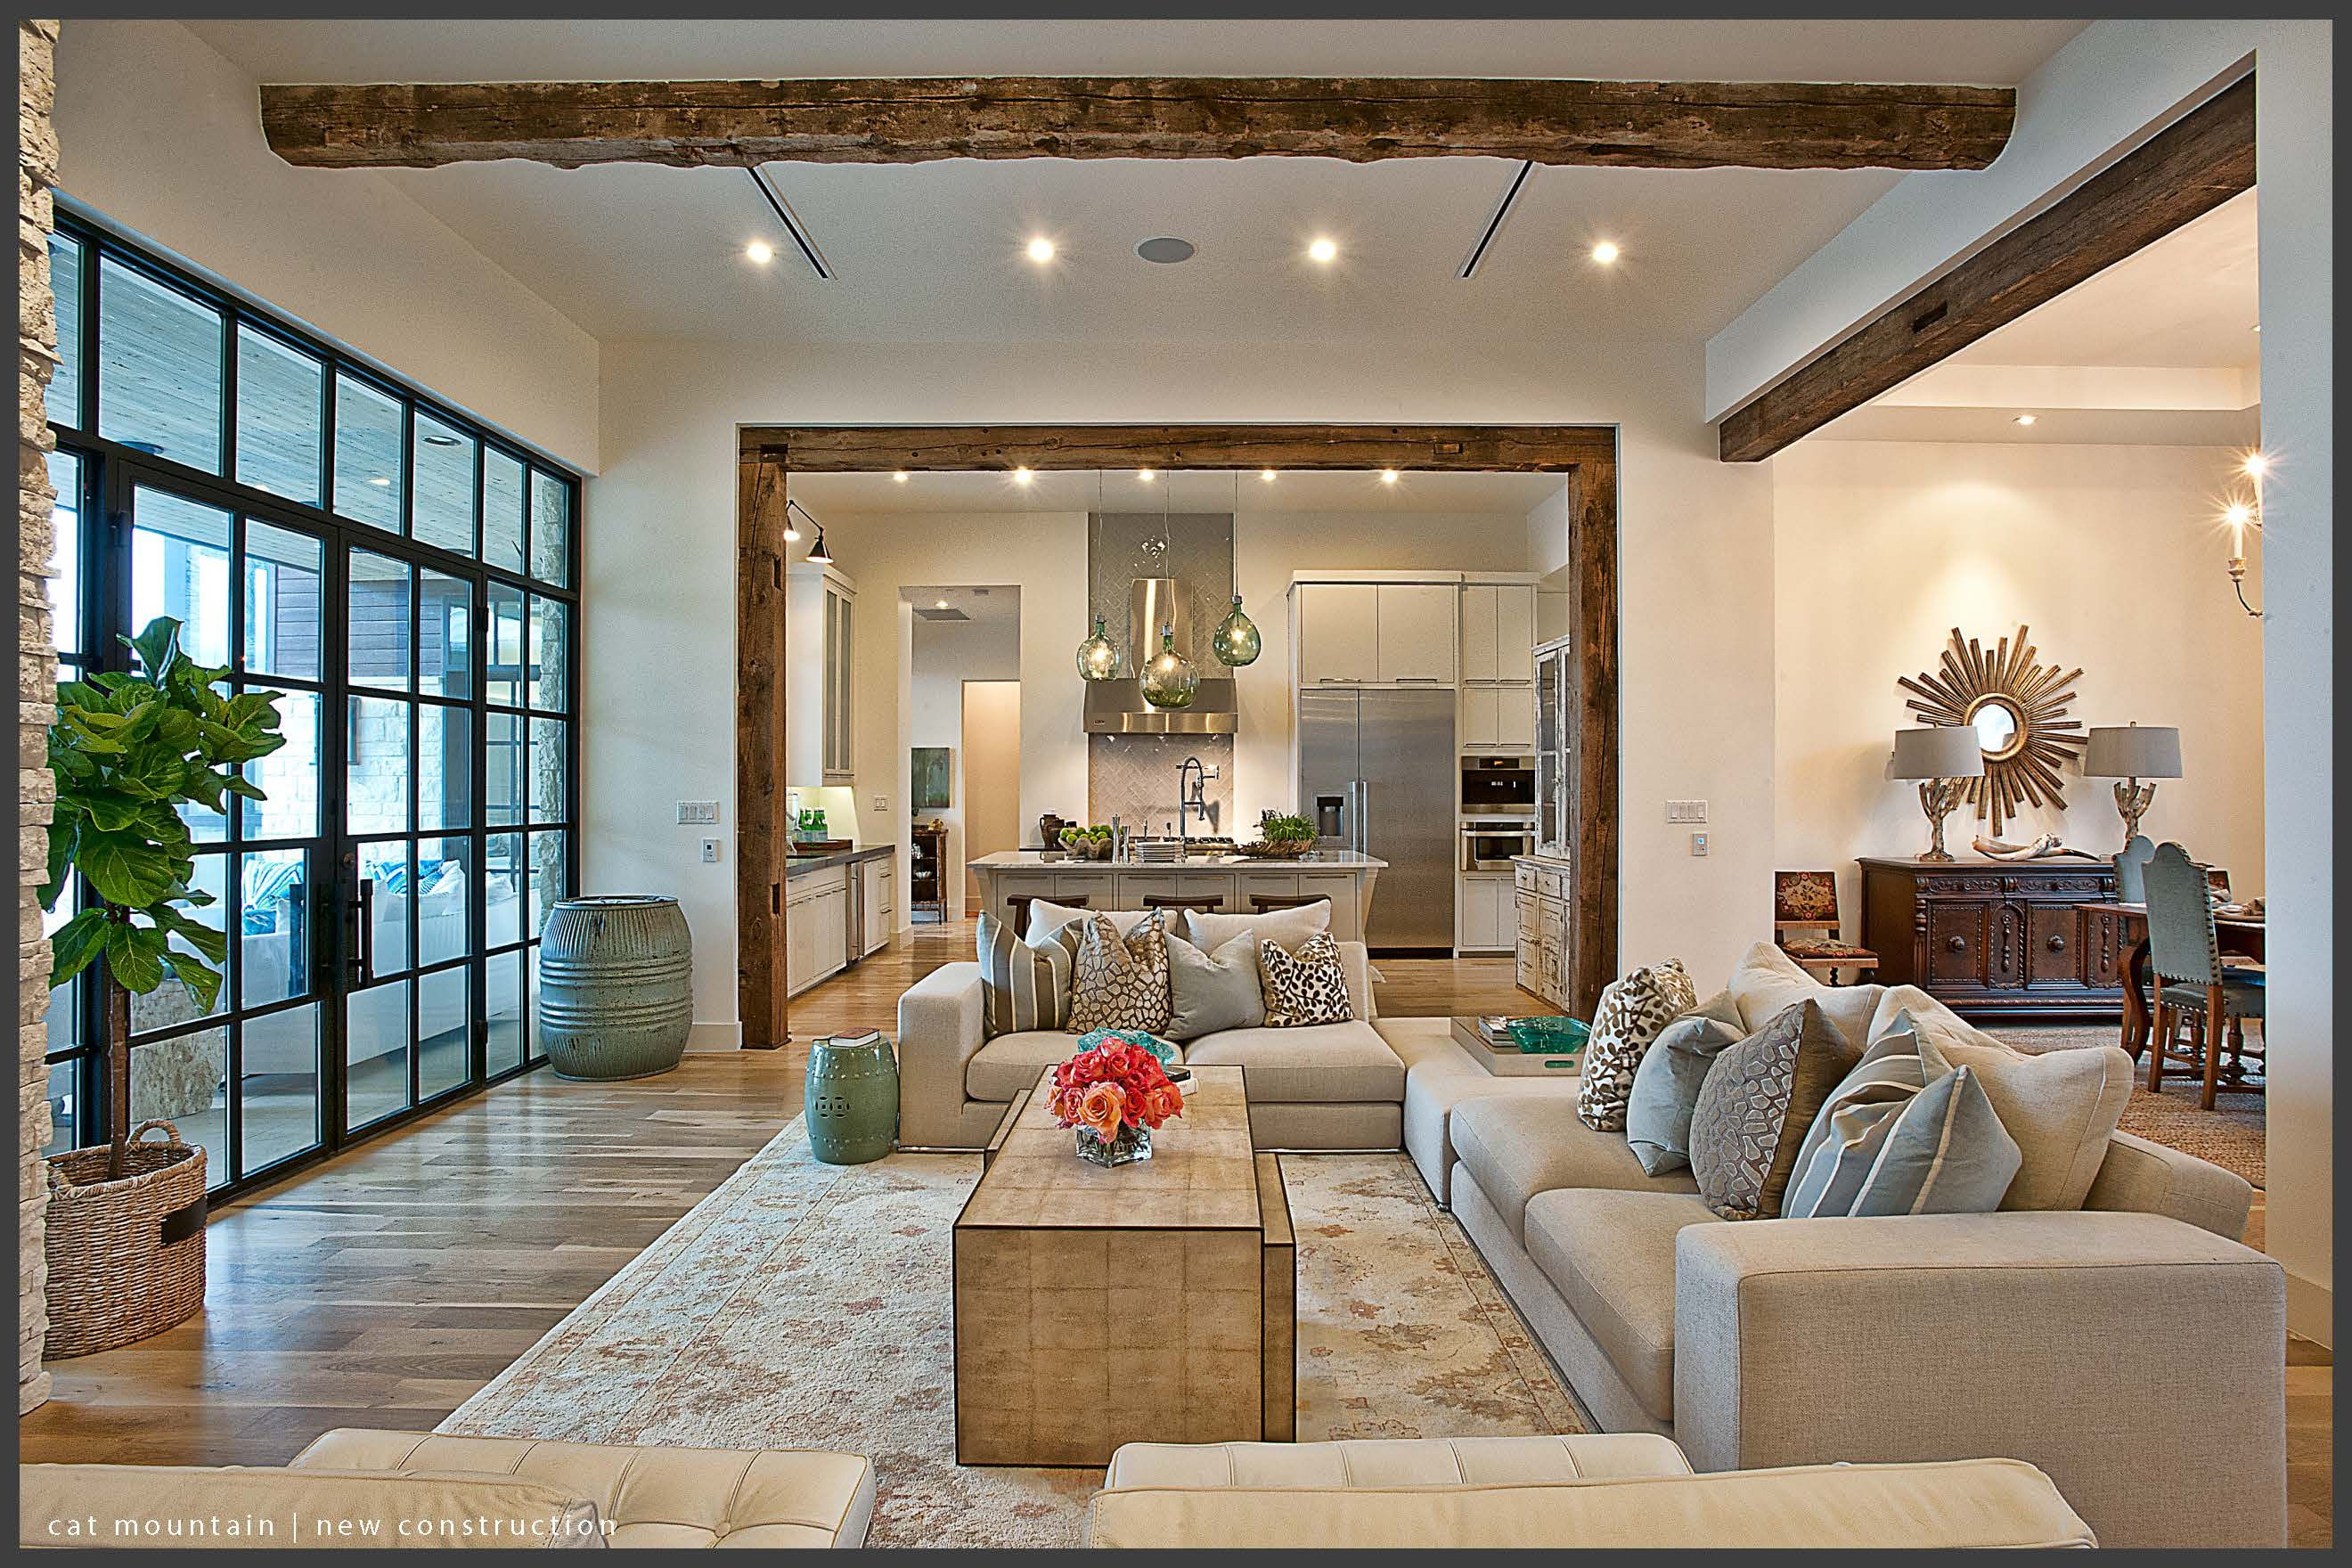 open concept living room open concept living room Stunning Open Concept Living Room Ideas open concept living room featured image